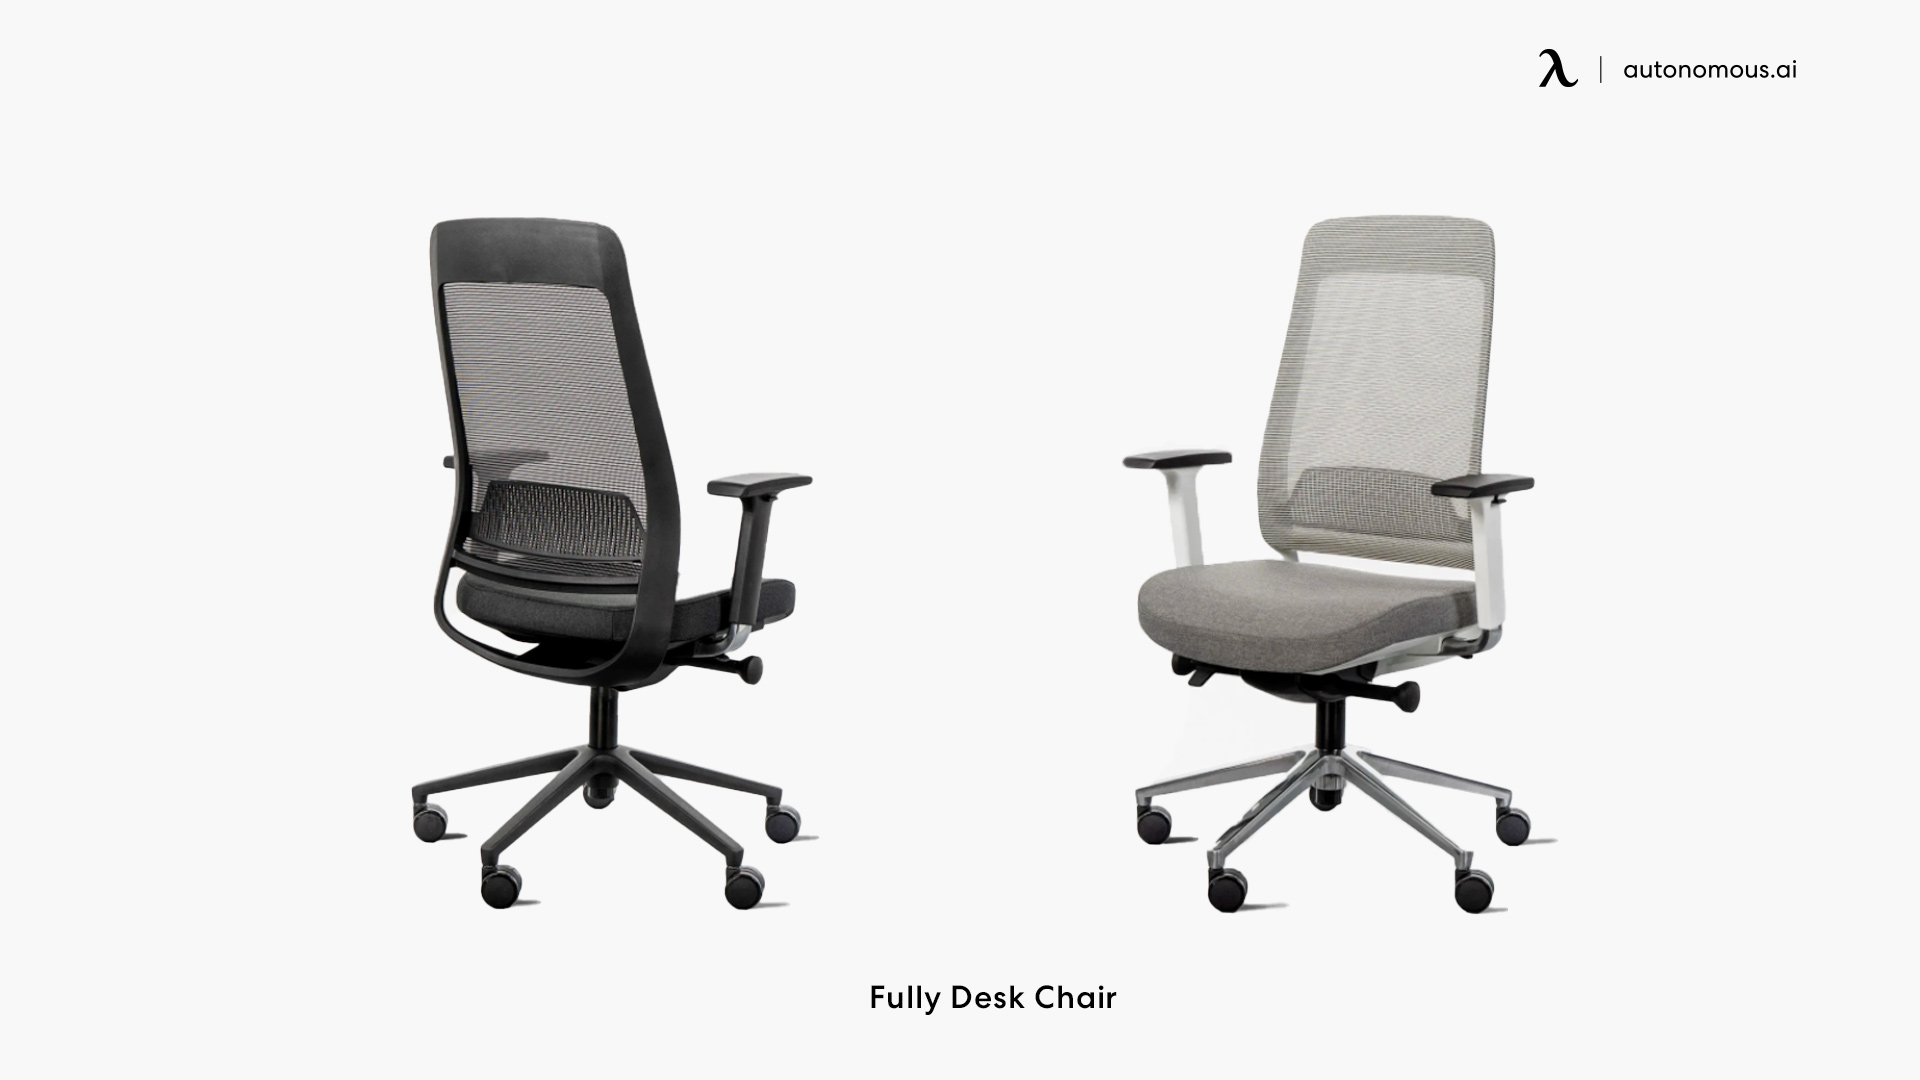 Fully office chair design